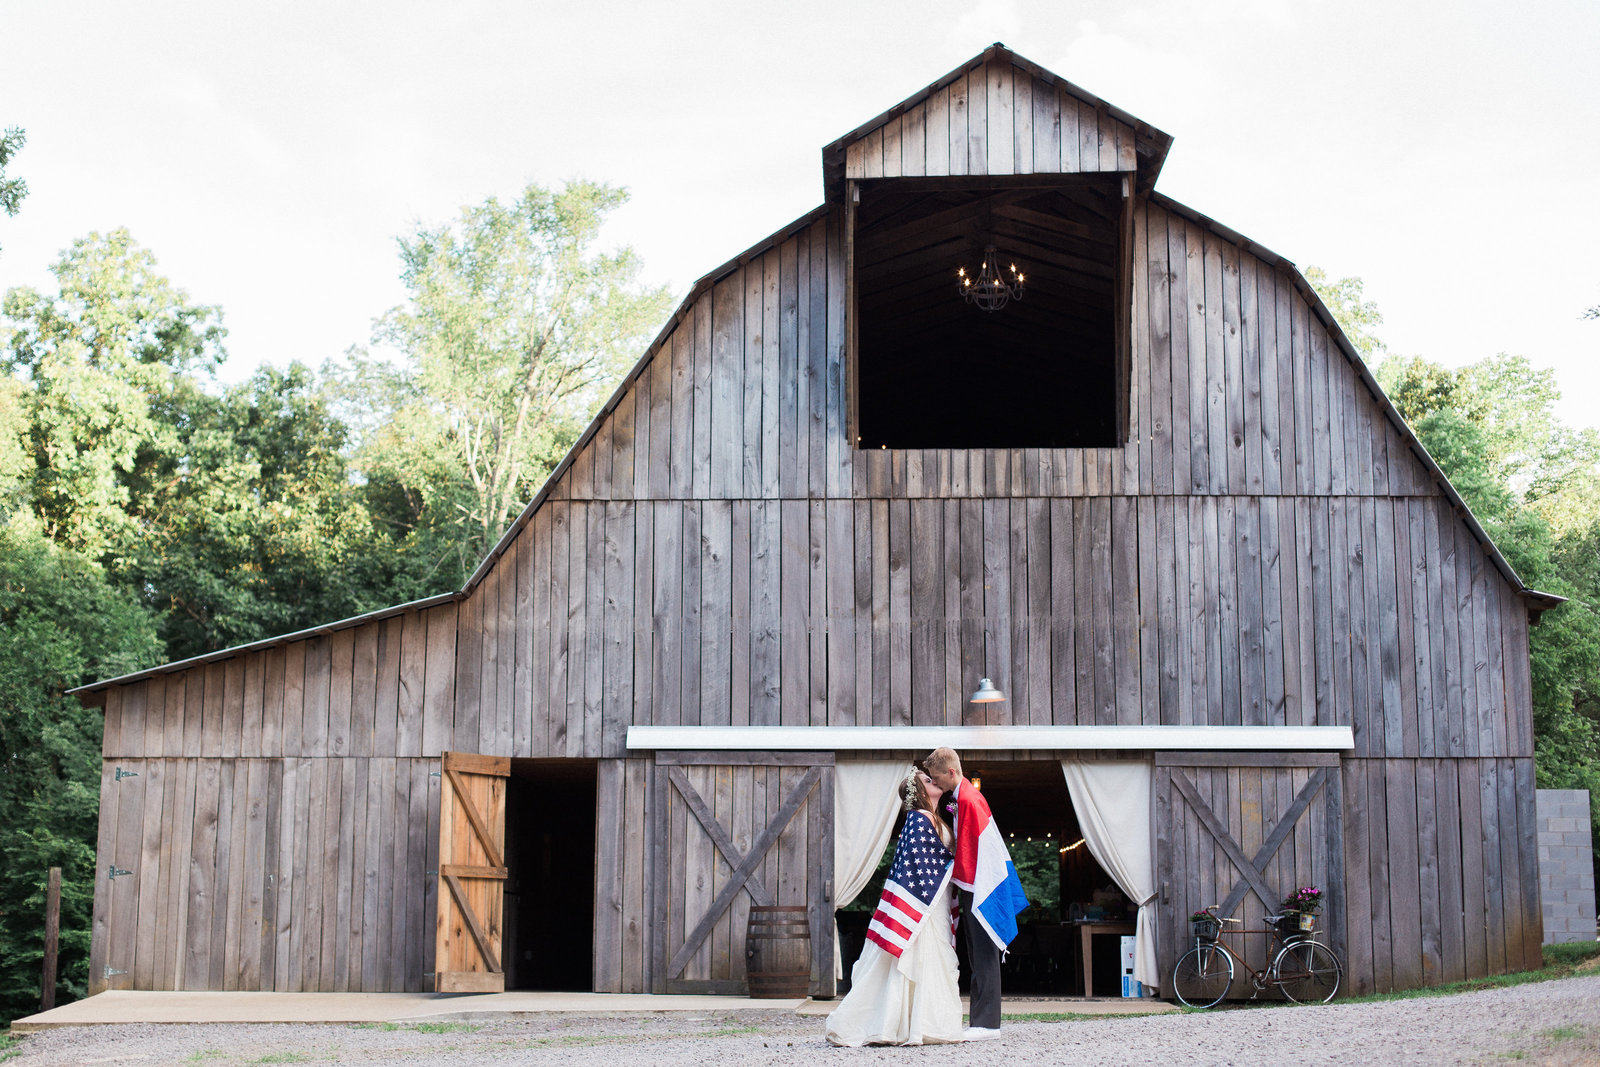 Destination Wedding Photographer Jess Collins Photography in Nasvhille at The Wren's Nest Wedding Venue in Tennessee